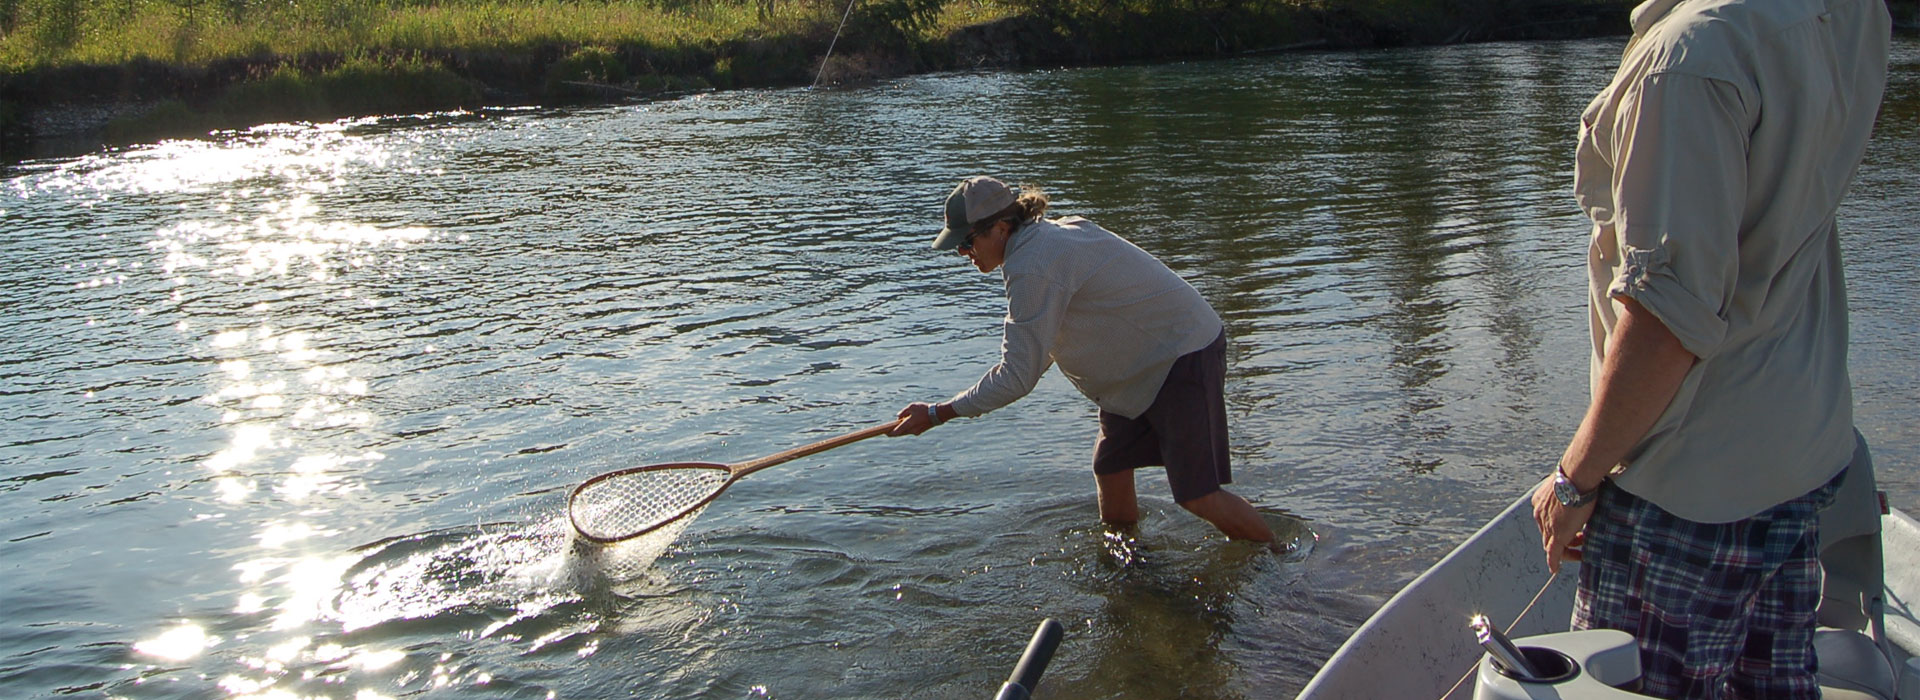 Elk river fly fishing guides holy waters for Elk river fishing